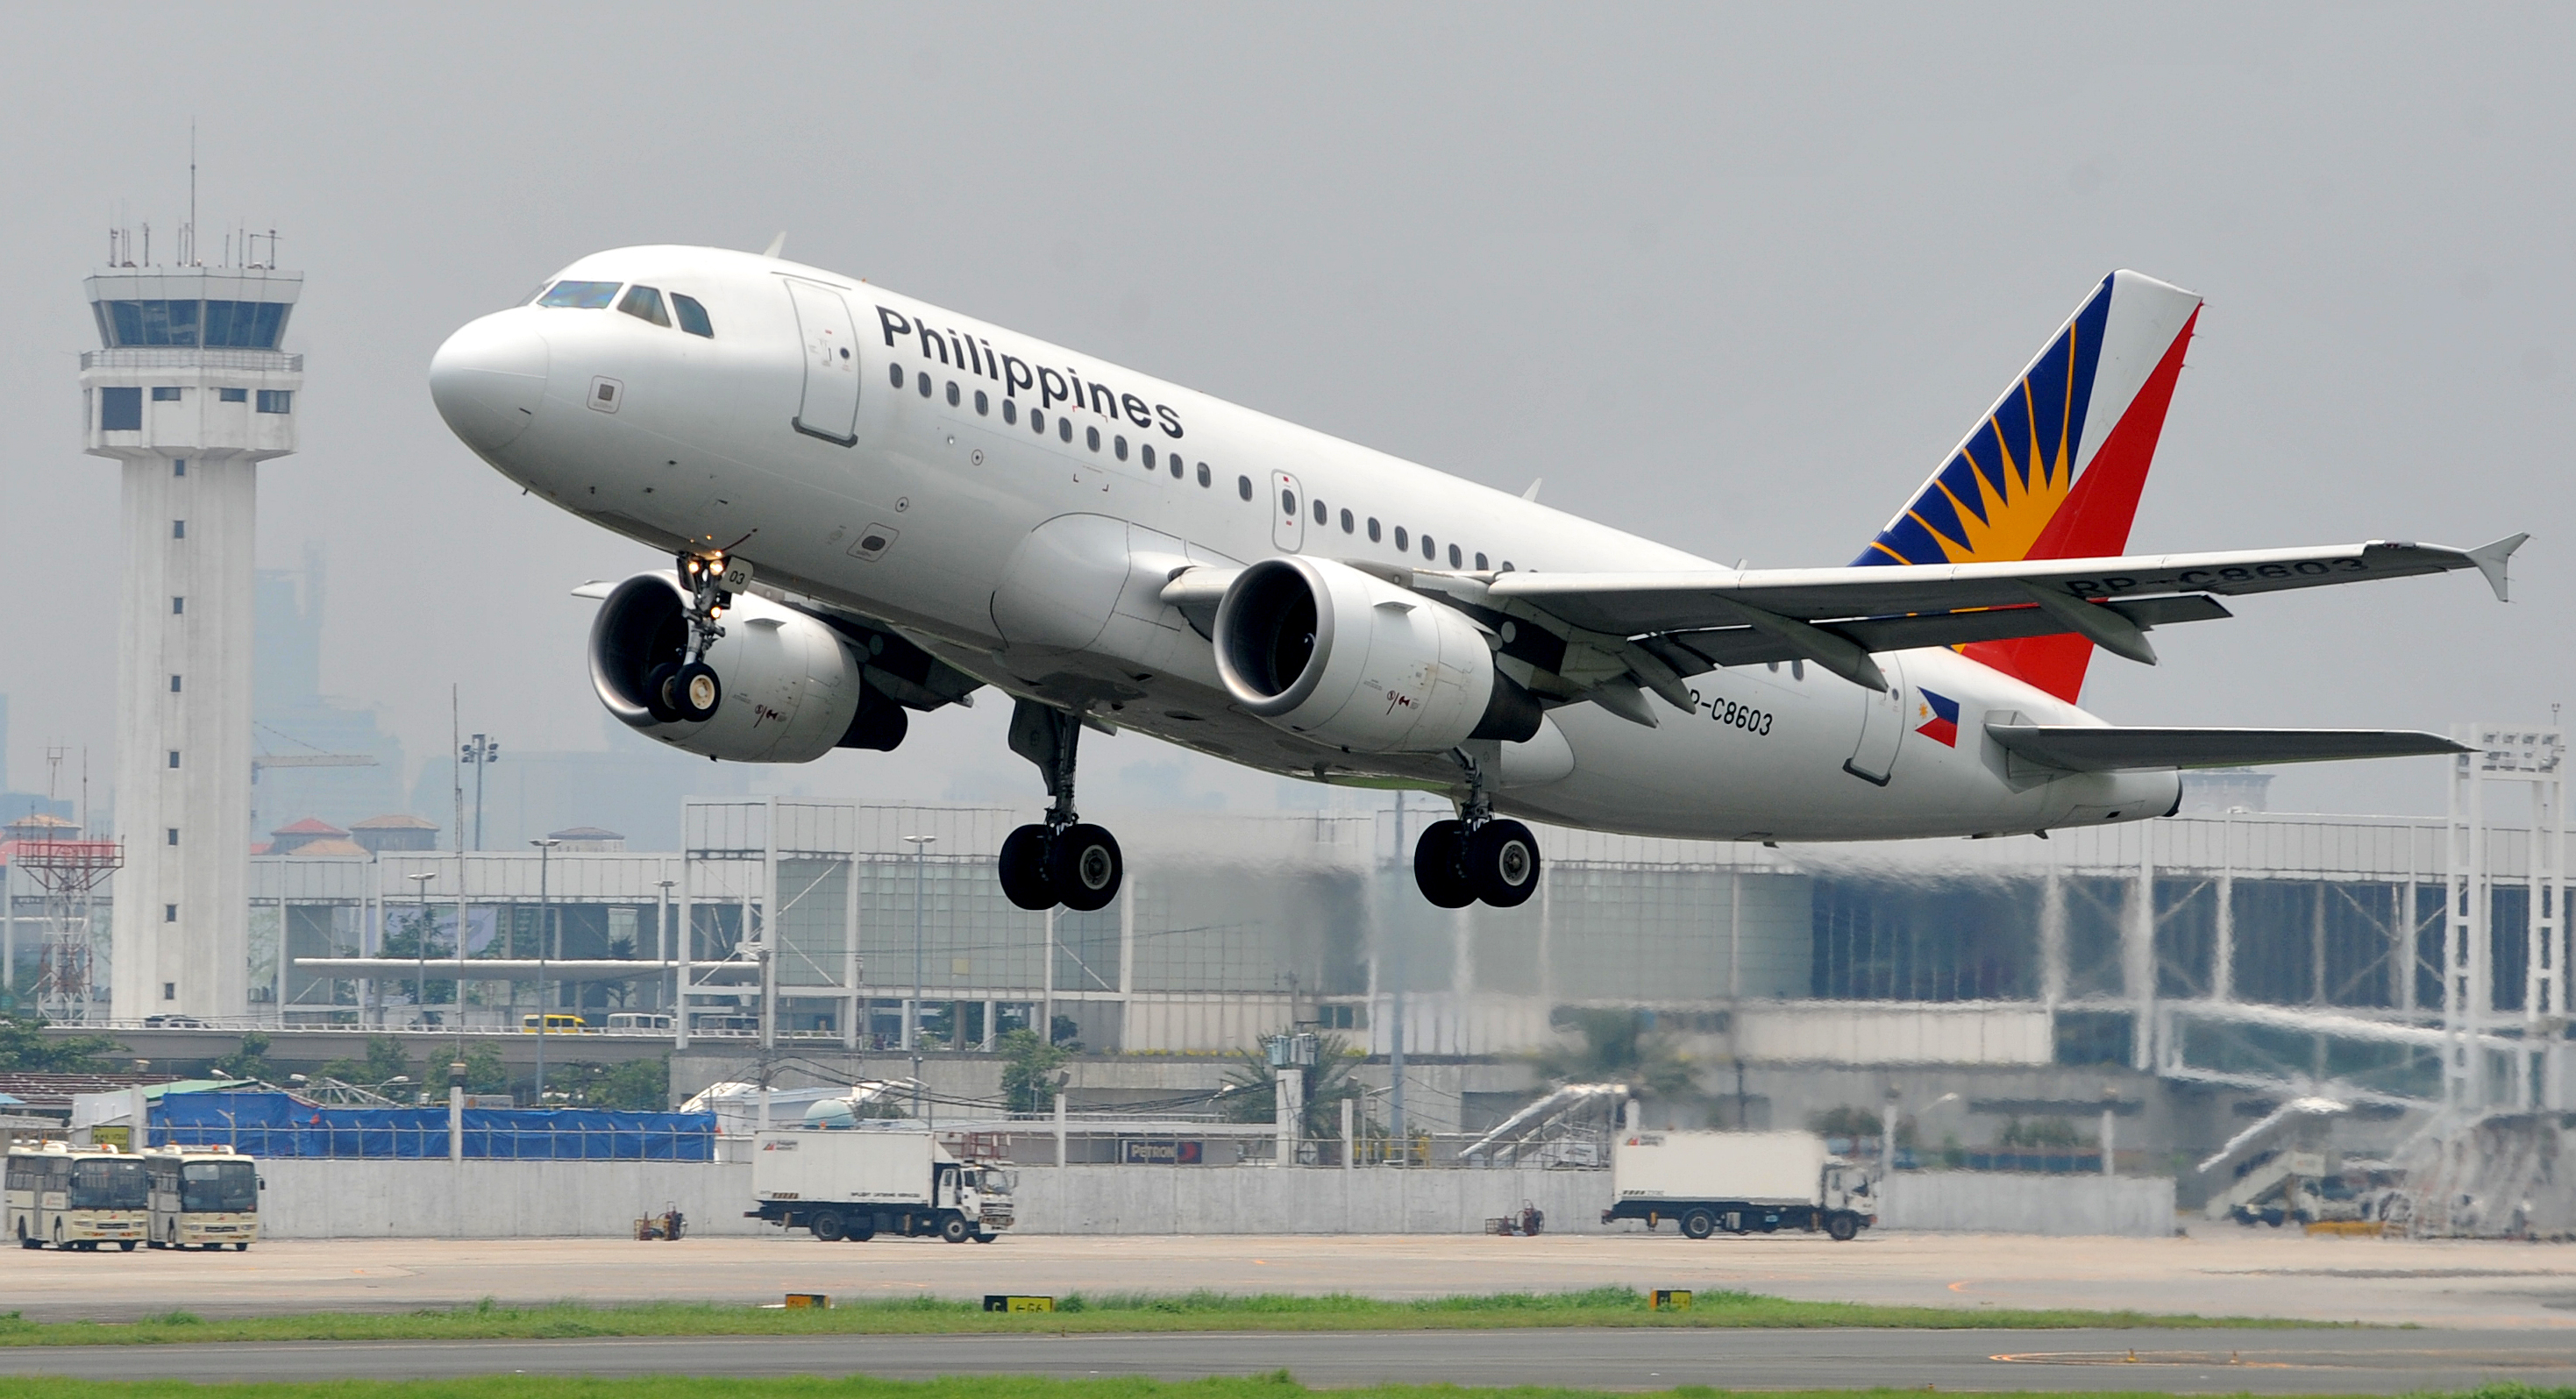 A Philippine Airlines (PAL) plane takes